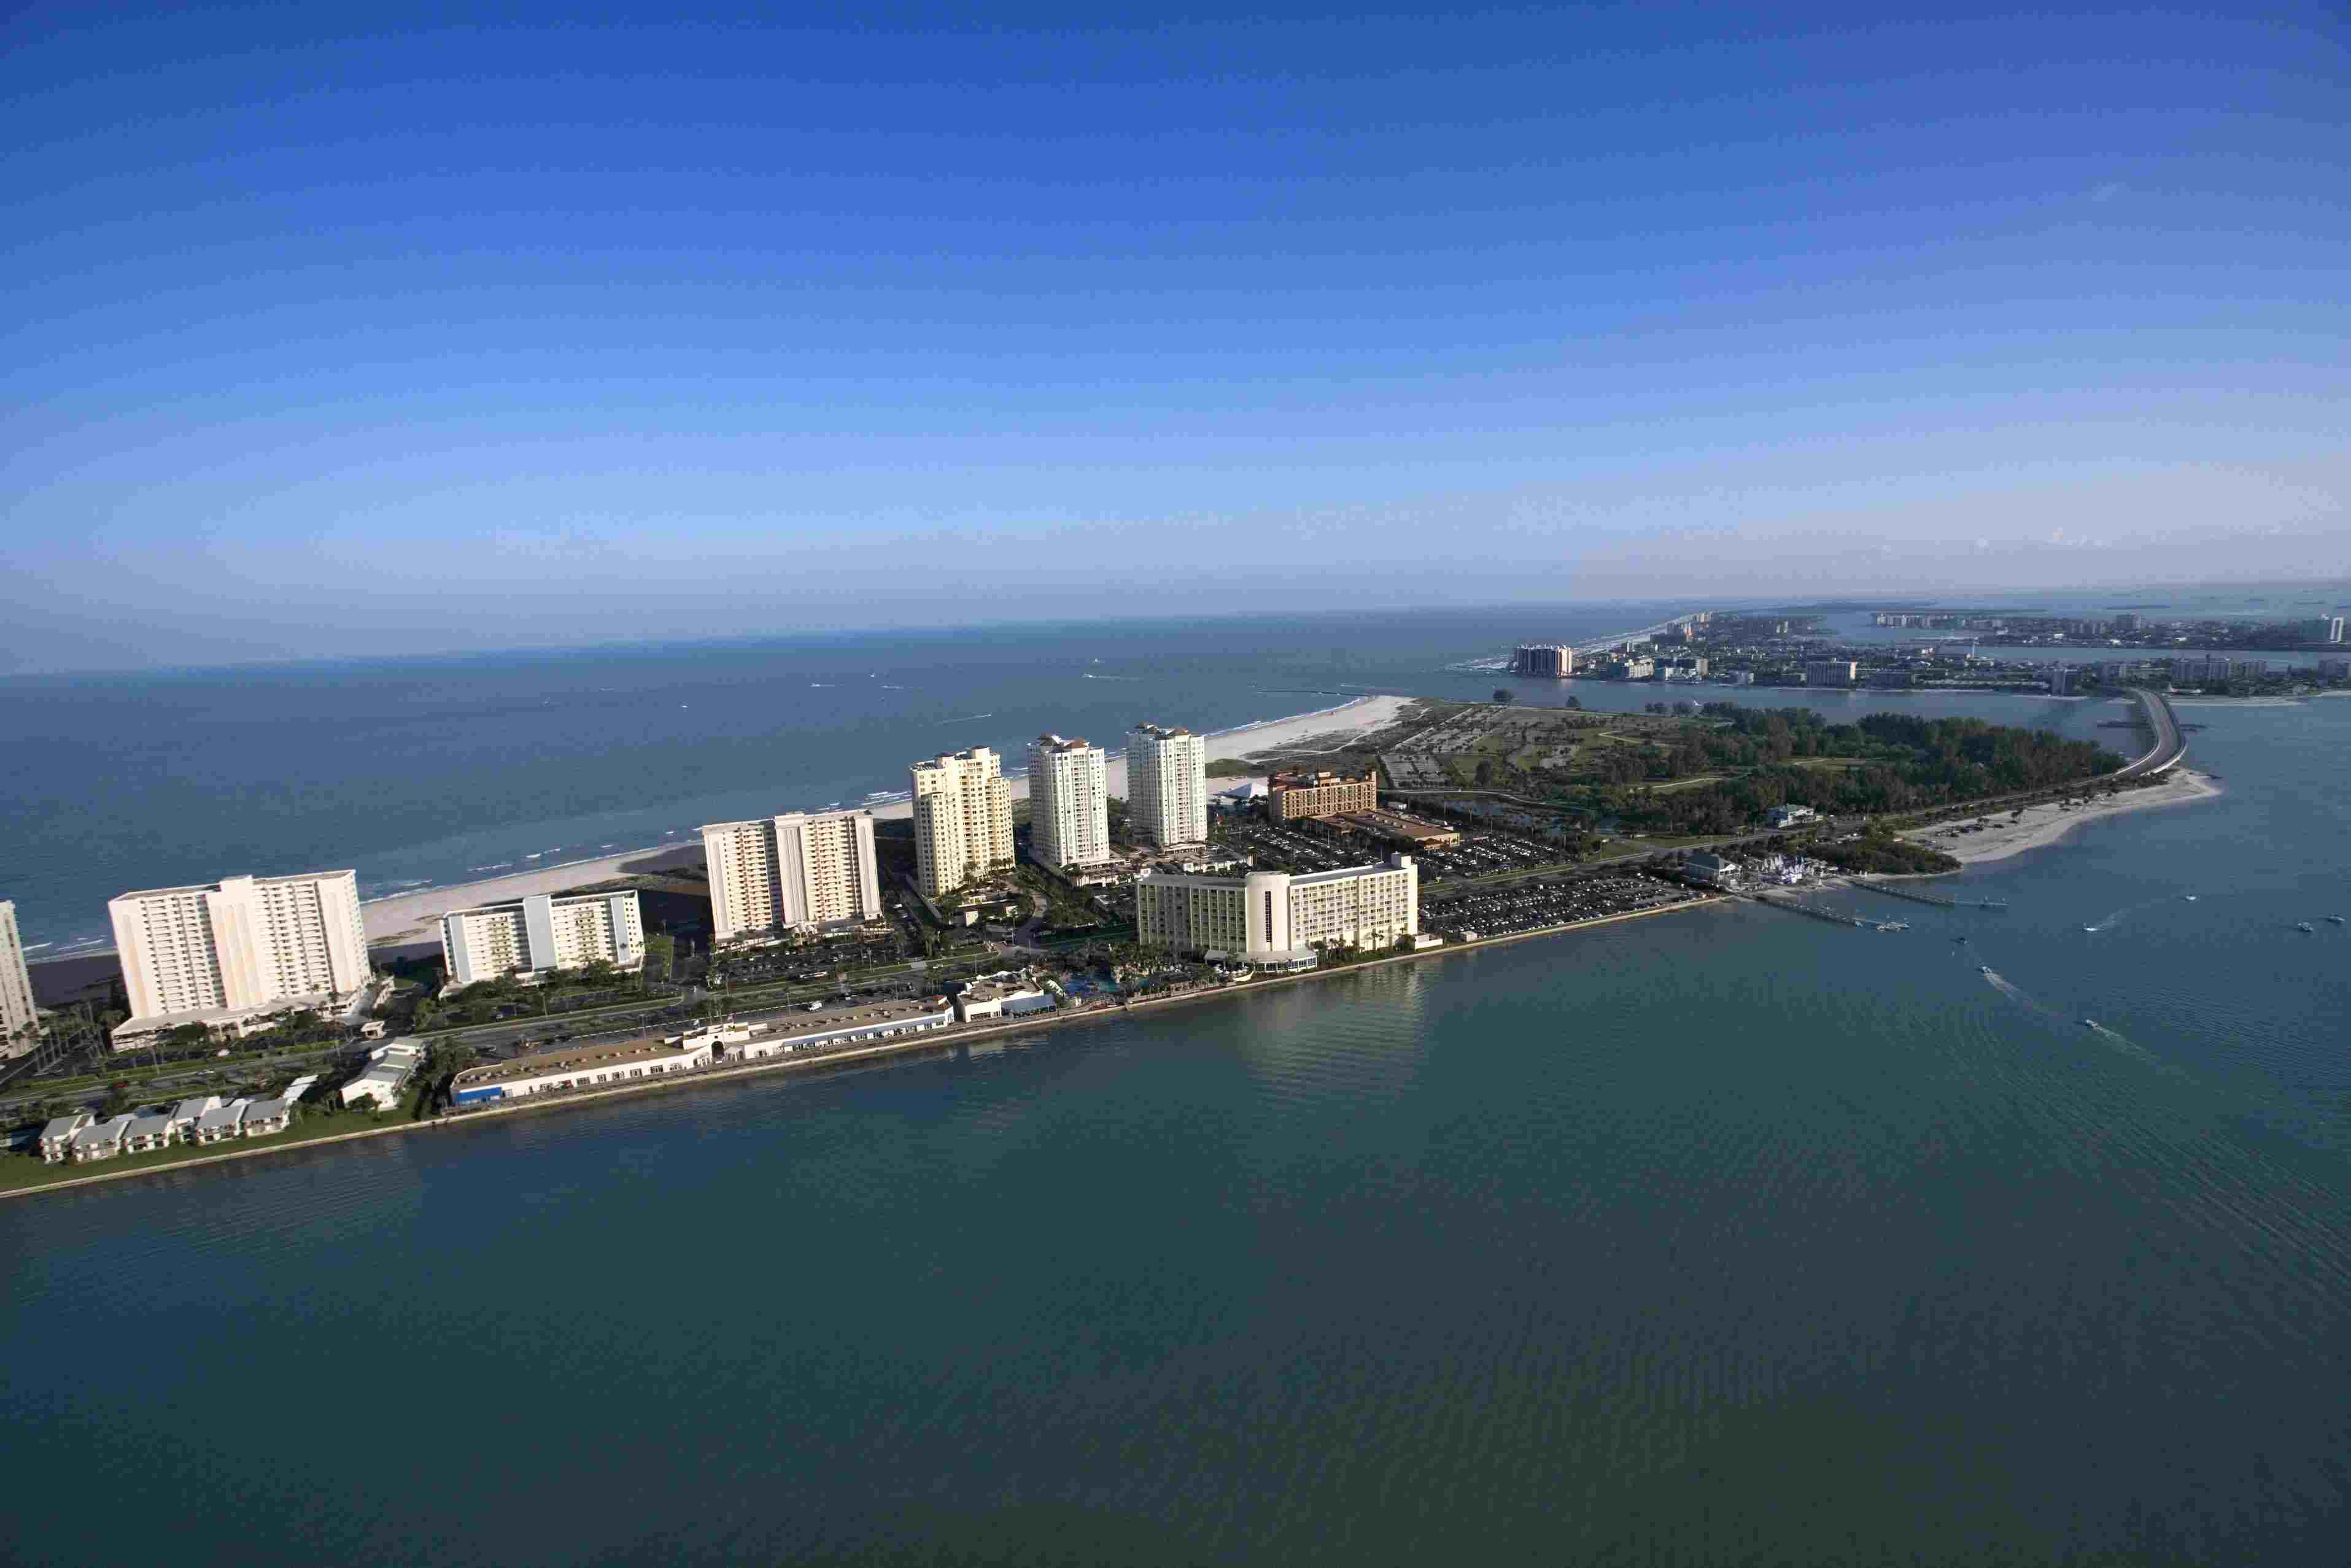 Aerial view of hotels of Clearwater, Florida